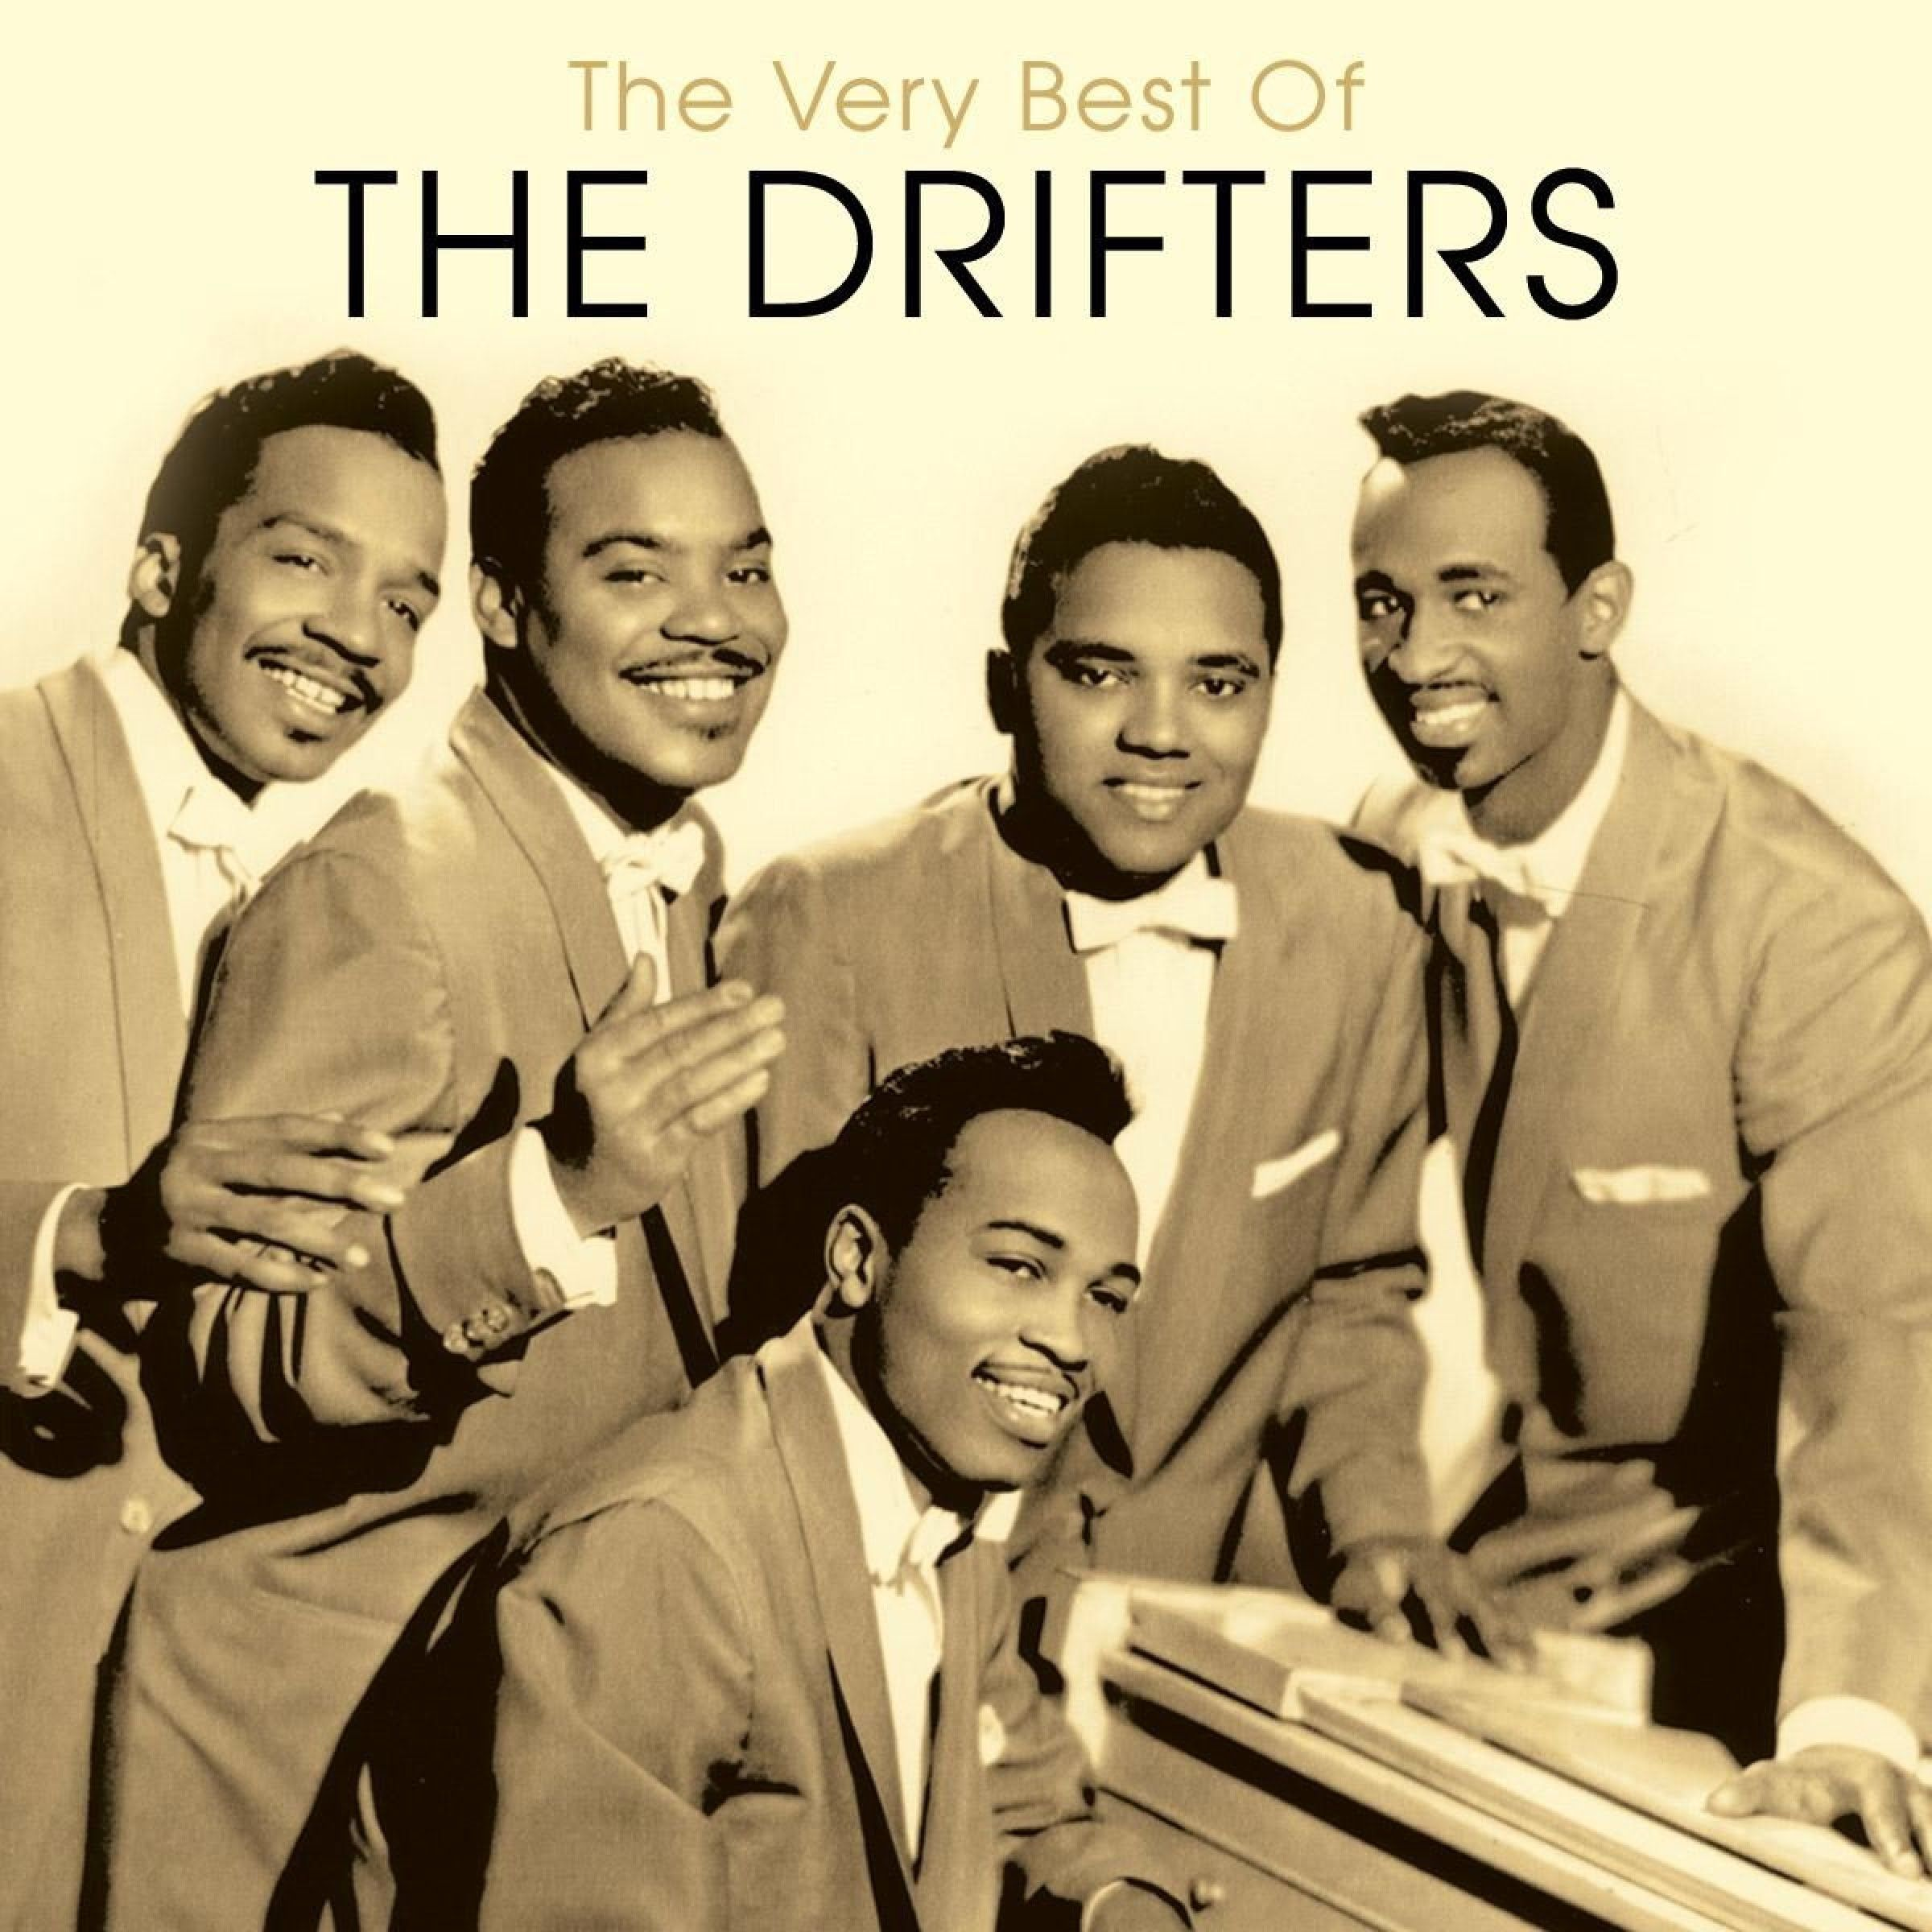 the drifters white christmas - White Christmas By The Drifters